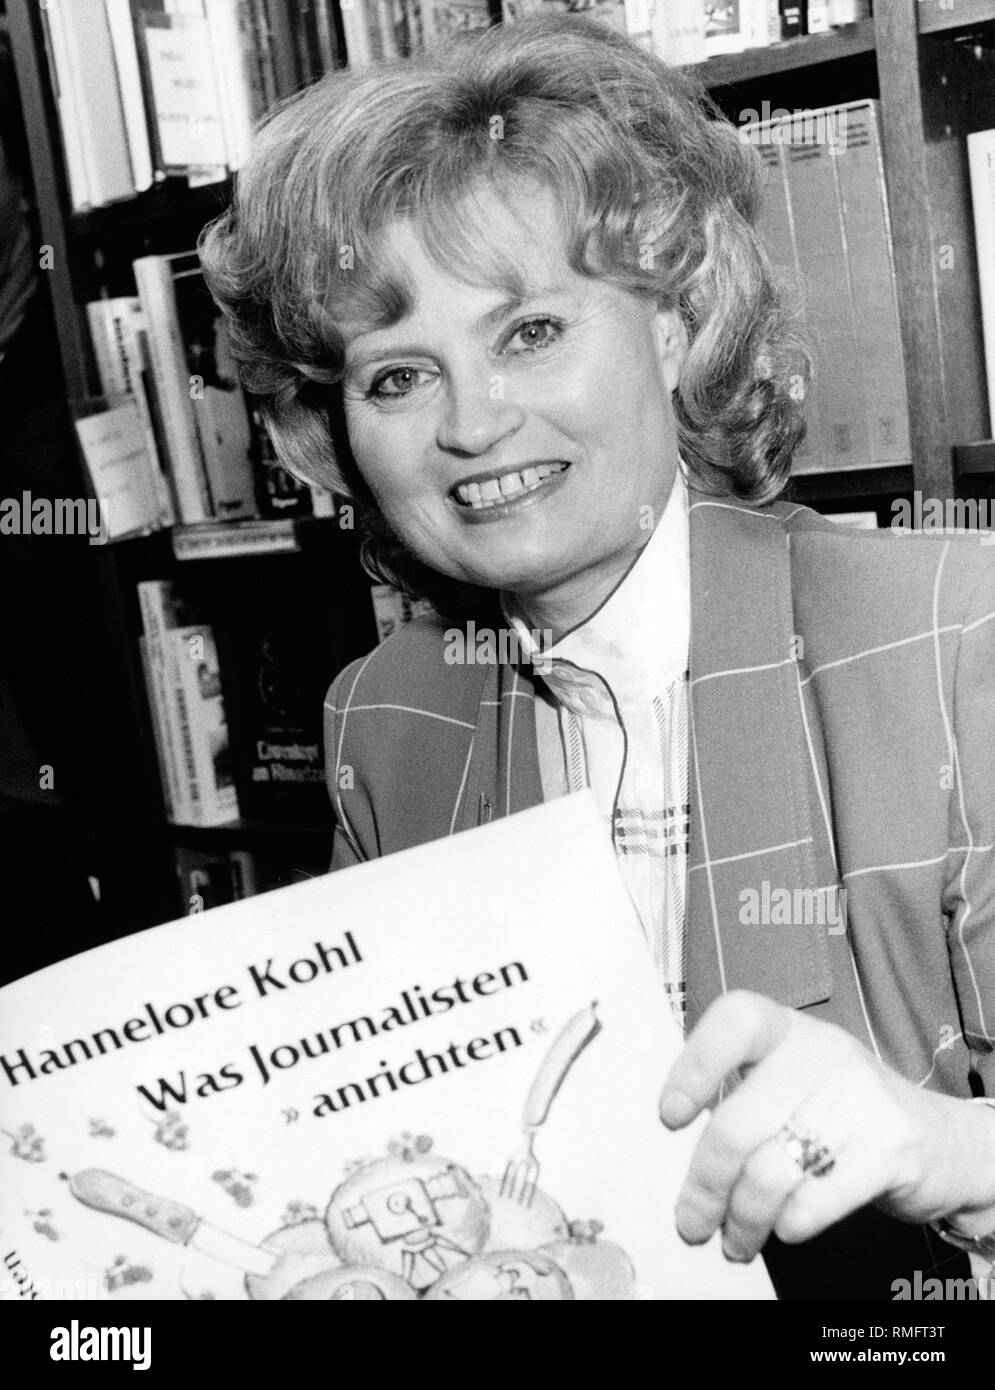 """Hannelore Kohl presents in a bookstore the cookbook published by her """"Was Journalisten anrichten"""", in which well-known German journalists present cooking recipes. The profit will go to her foundation in favor of accident victims Kuratorium ZNS, (today: ZNS - Hannelore Kohl Stiftung fuer Verletzte mit Schaeden des Zentralen Nervensystems - ZNS - Hannelore Kohl Foundation for Patients with Damage of the Central Nervous System). Stock Photo"""